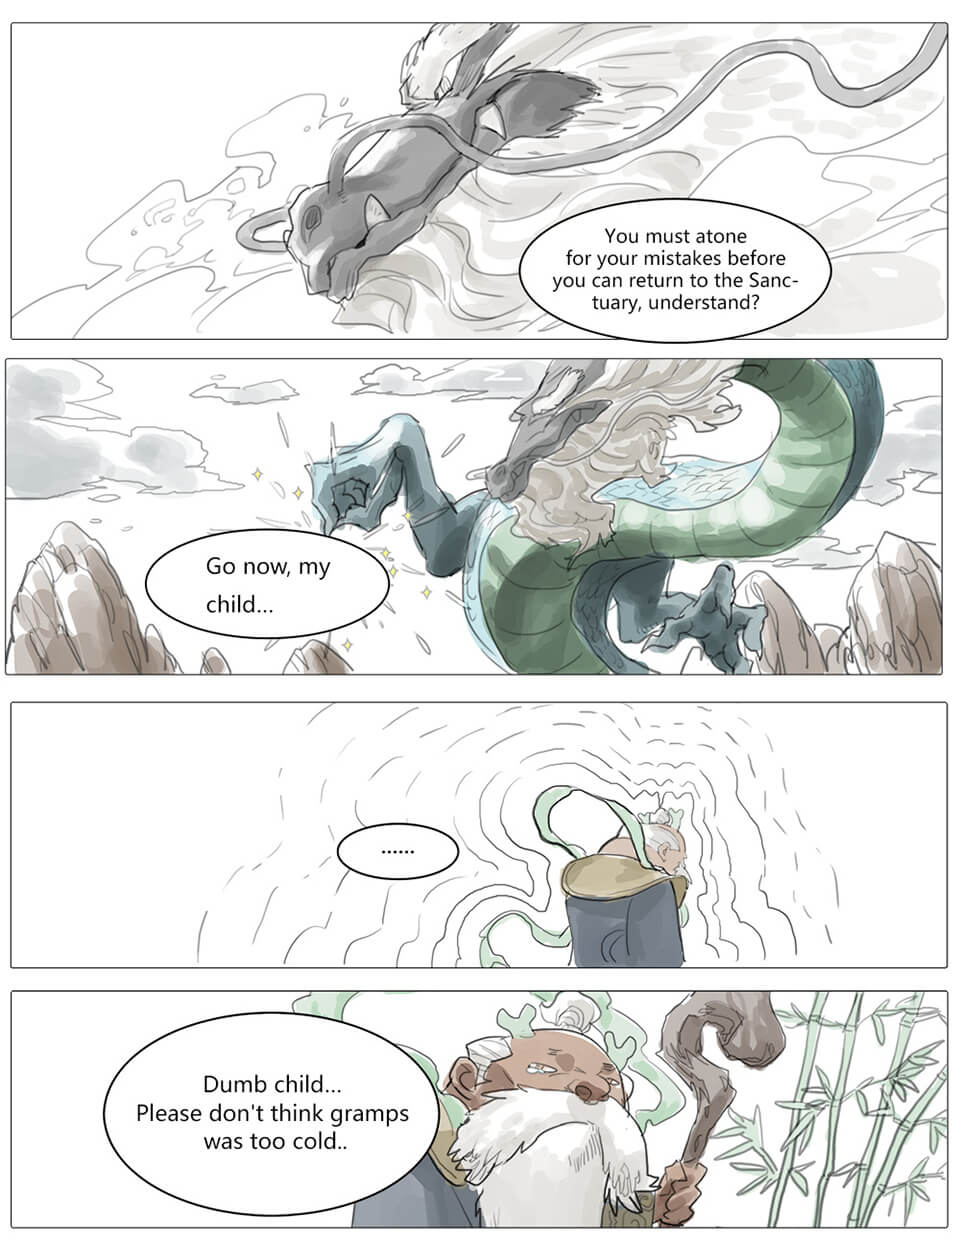 Mobile Legends: Bang Bang: The Origin of Chang'e - Comic page 7